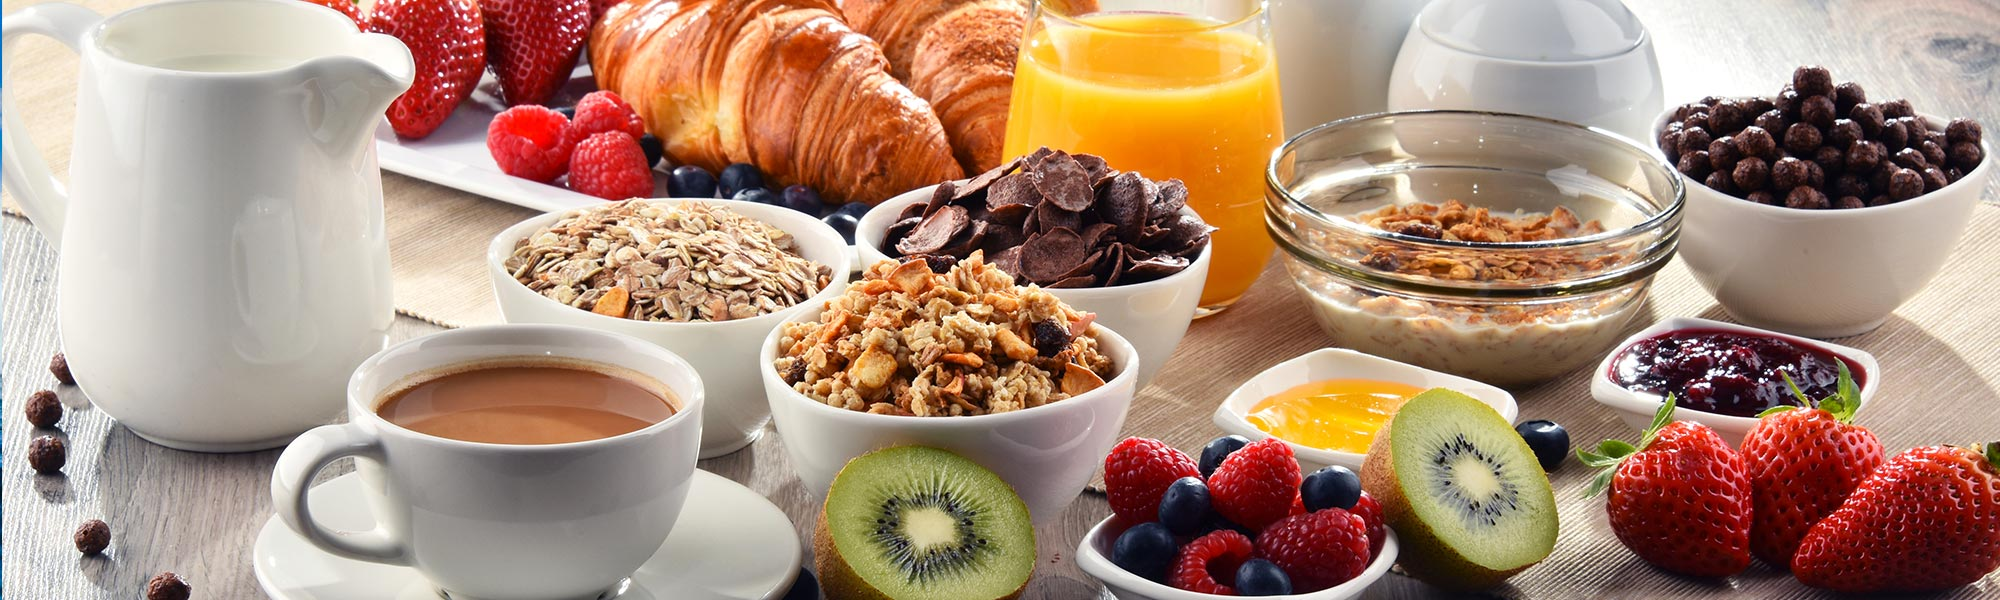 Breakfast Packages at Hotel E